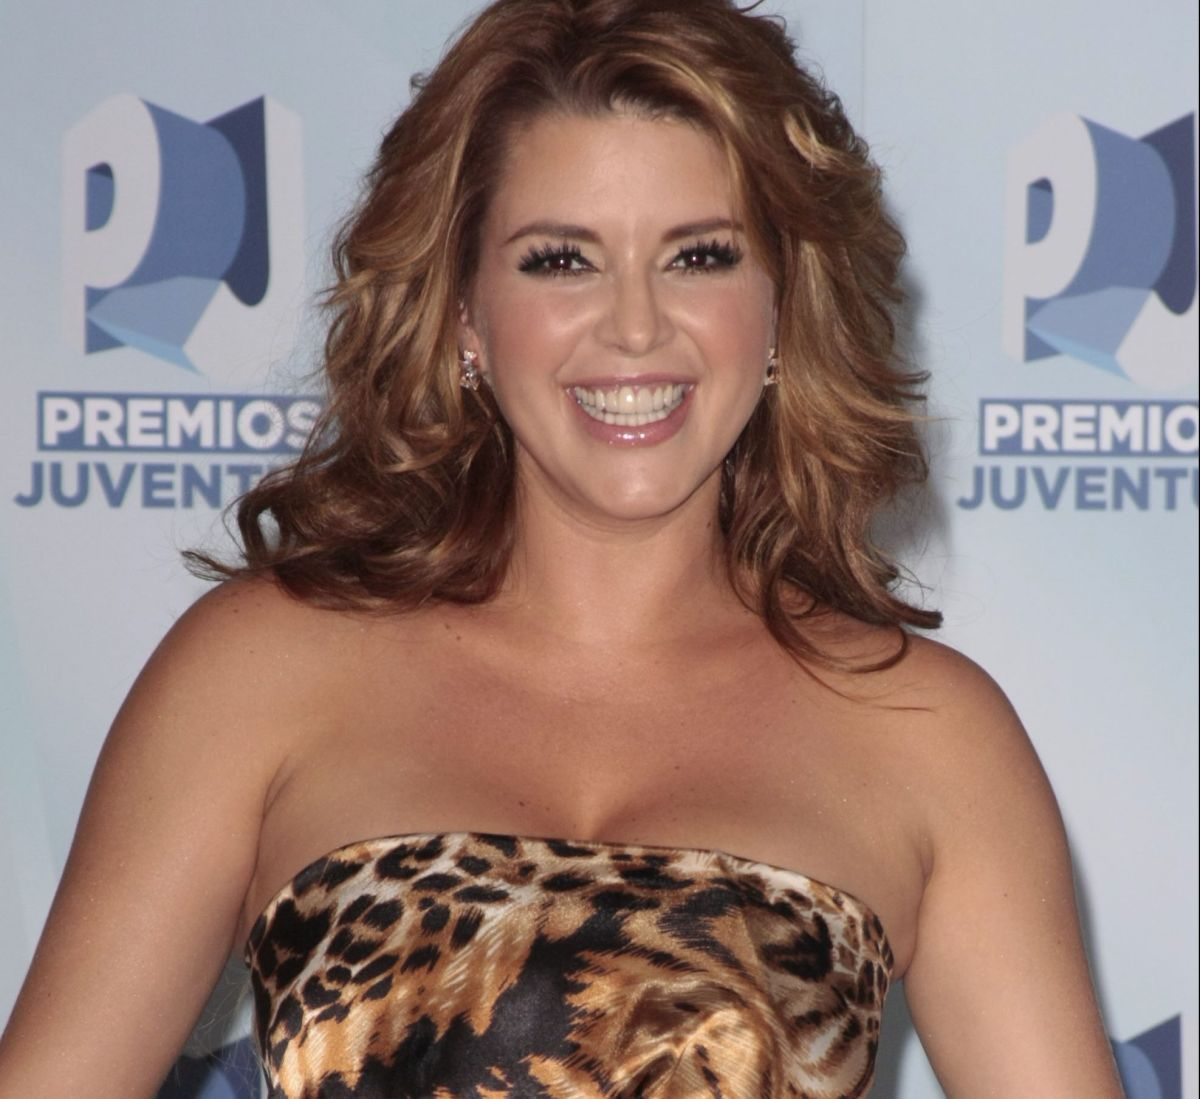 """Alicia Machado put her """"Boobies"""" in the foreground and her followers went crazy 